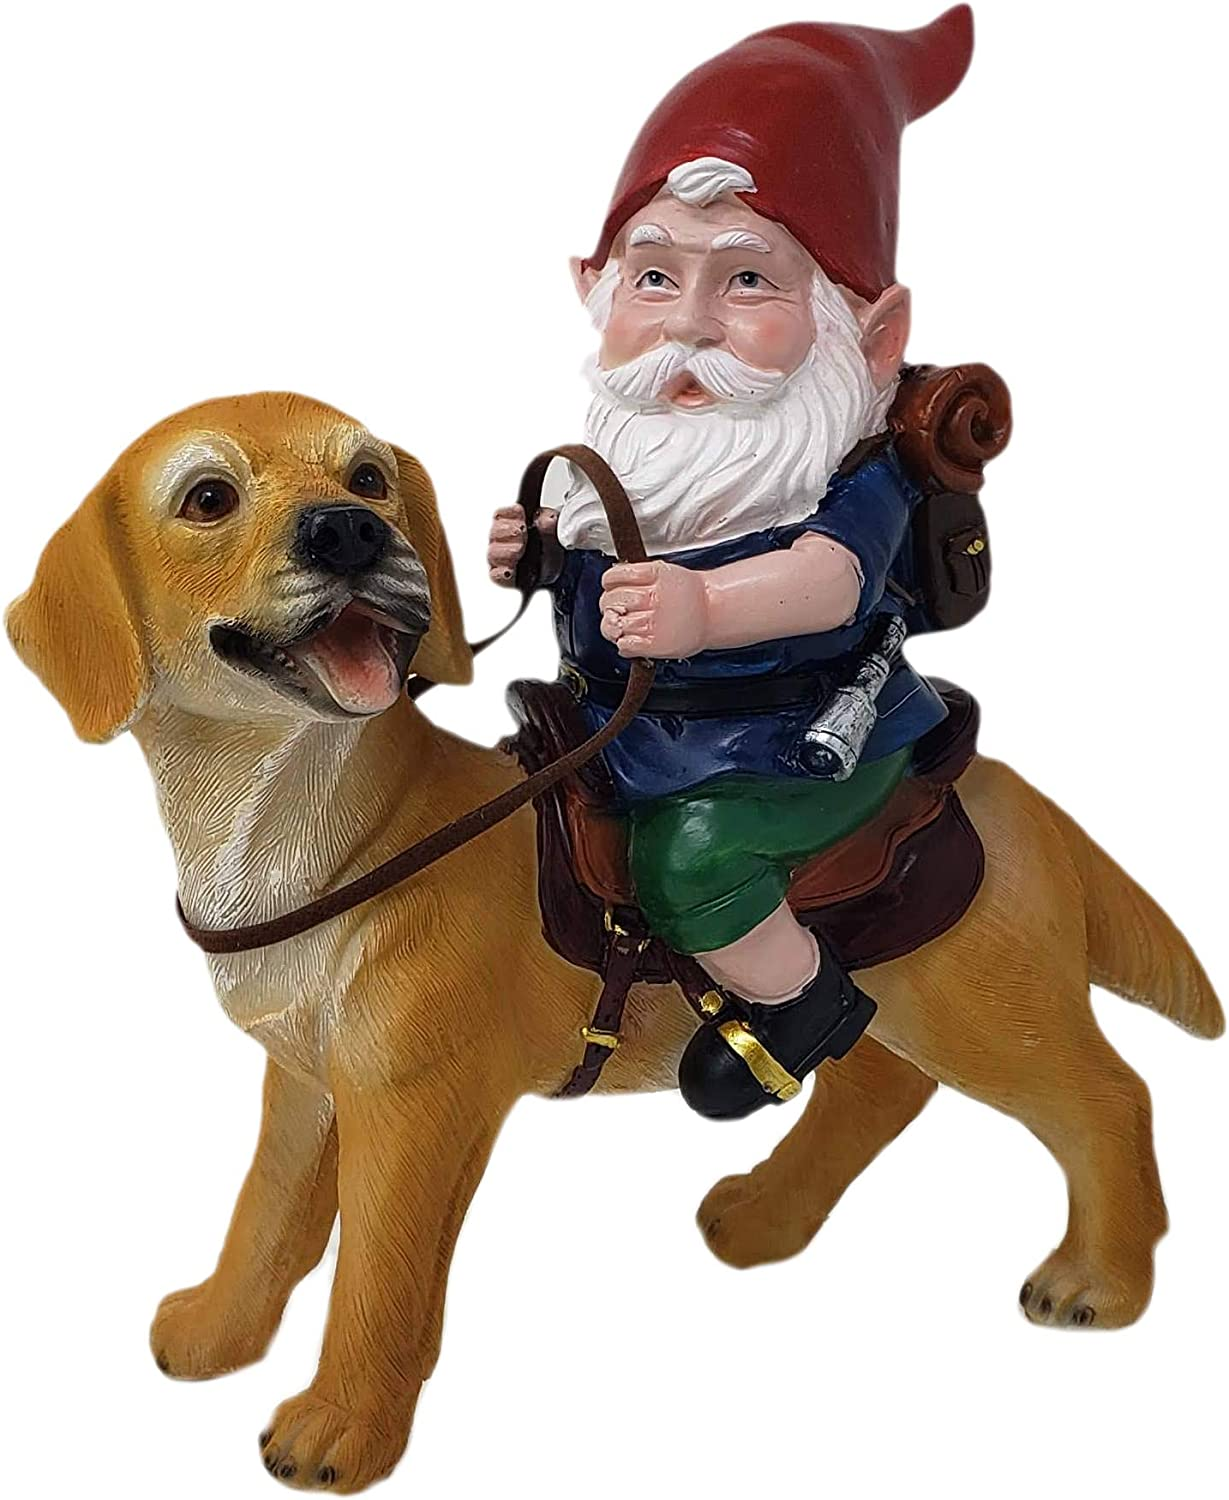 Funny Guy Mugs Gnome and a Yellow Lab Statue- Yellow Labrador Retriever- Indoor/Outdoor Garden Gnome Sculpture for Patio, Yard or Lawn